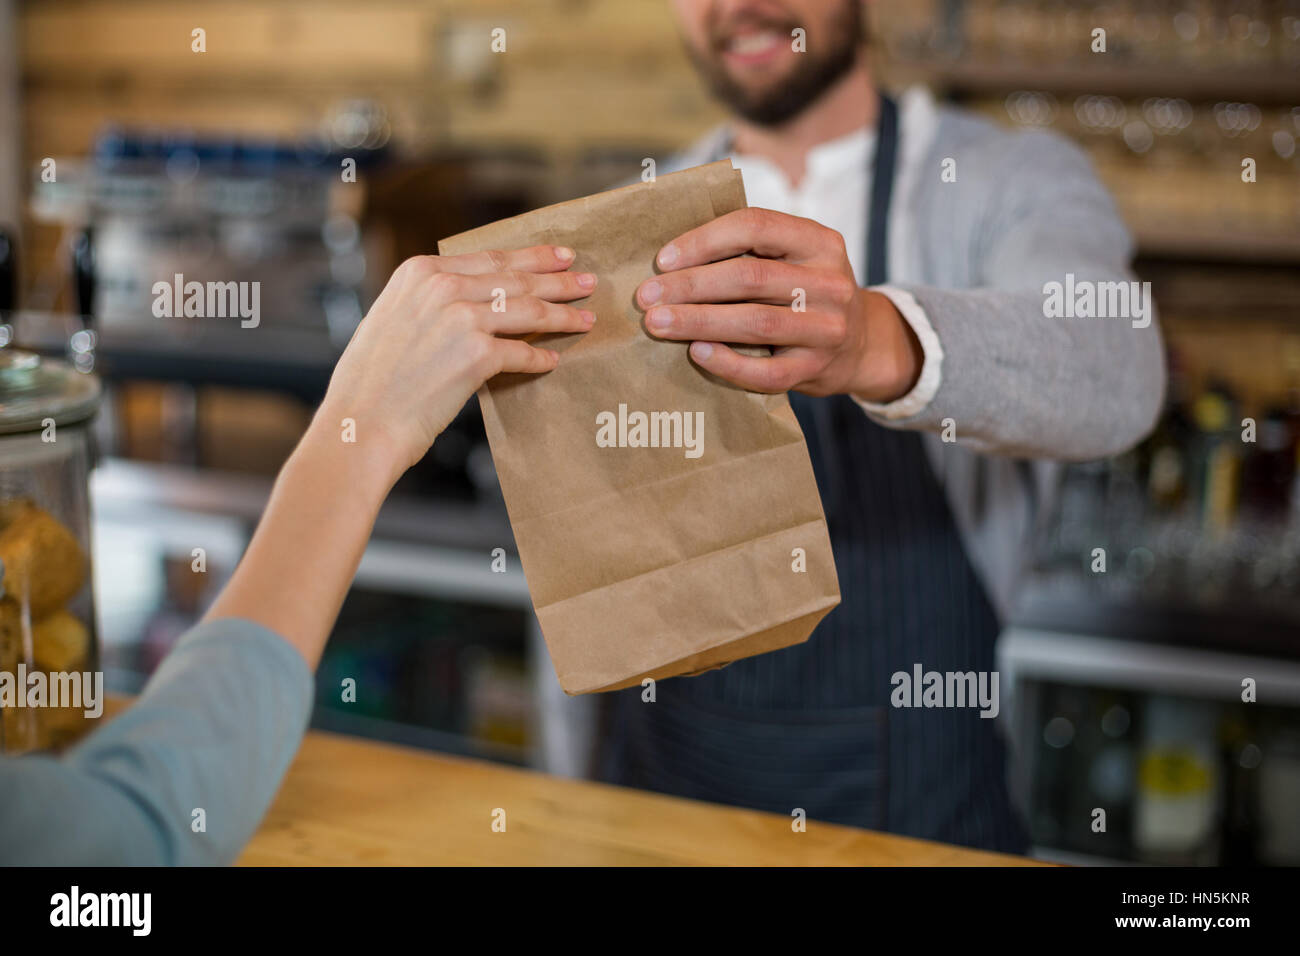 Woman receiving parcel from waiter at counter in cafe - Stock Image